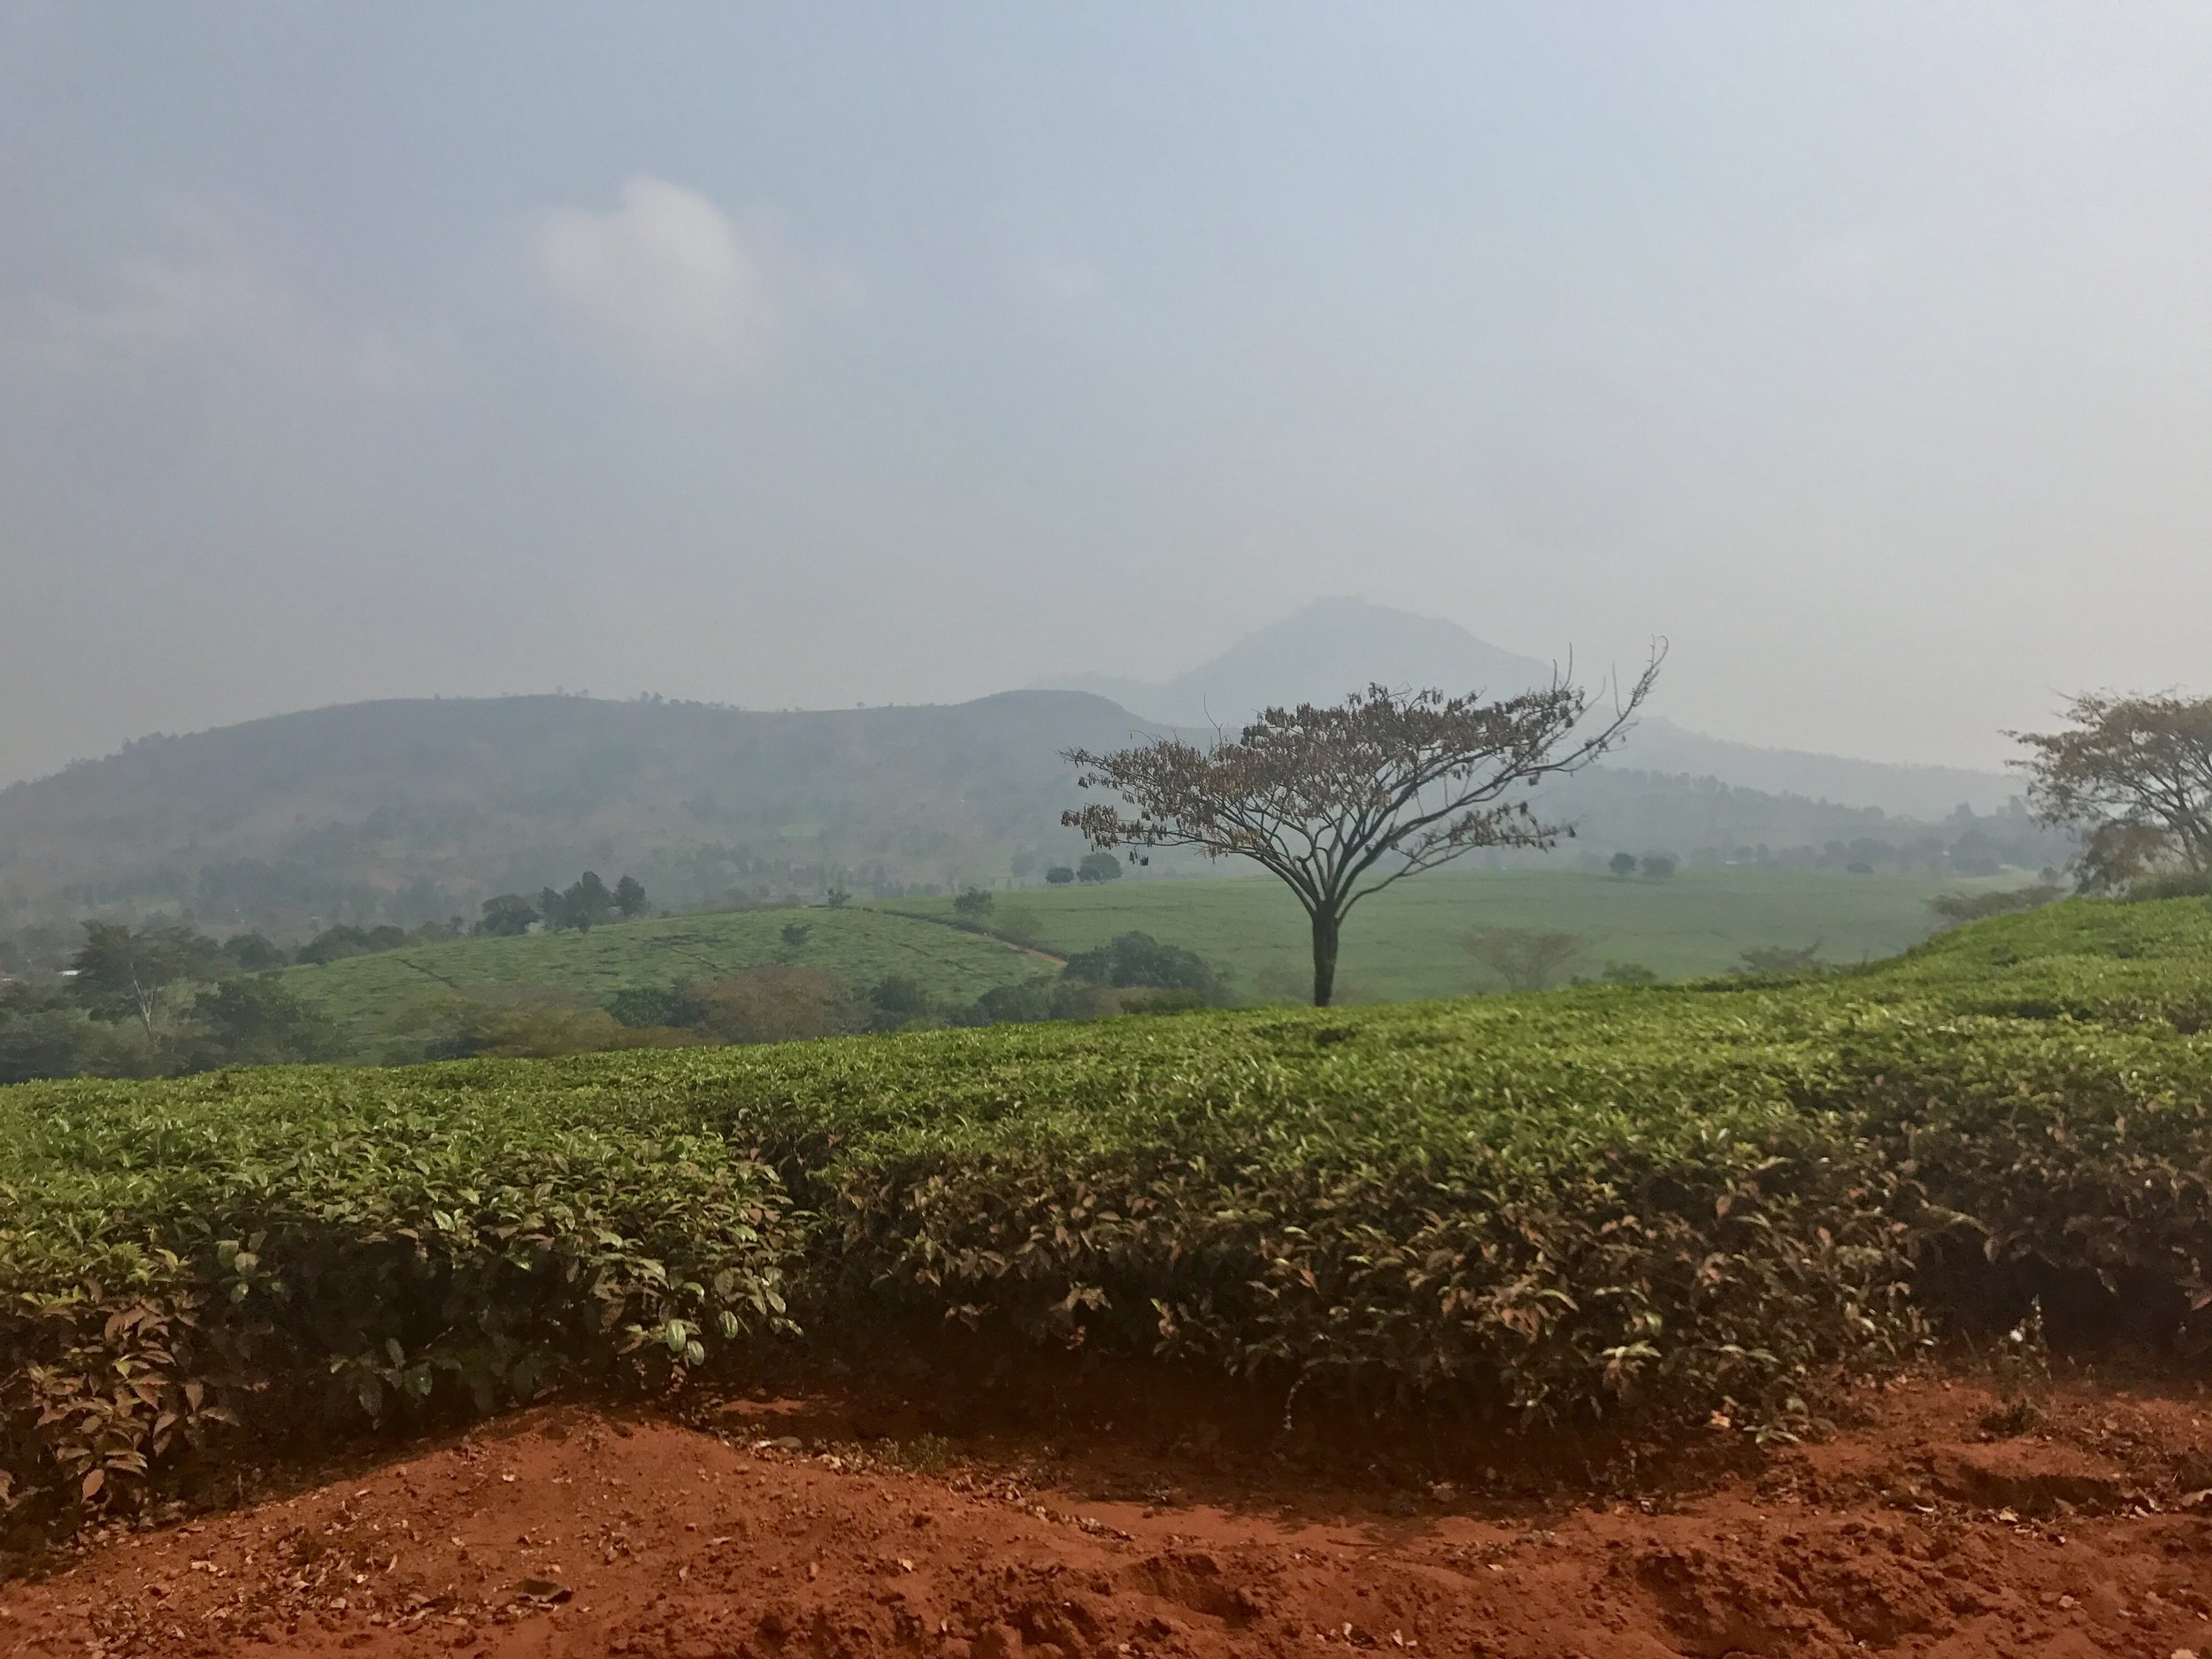 The tea plantations stretch as far as the eye can see, right up to the edge of the road